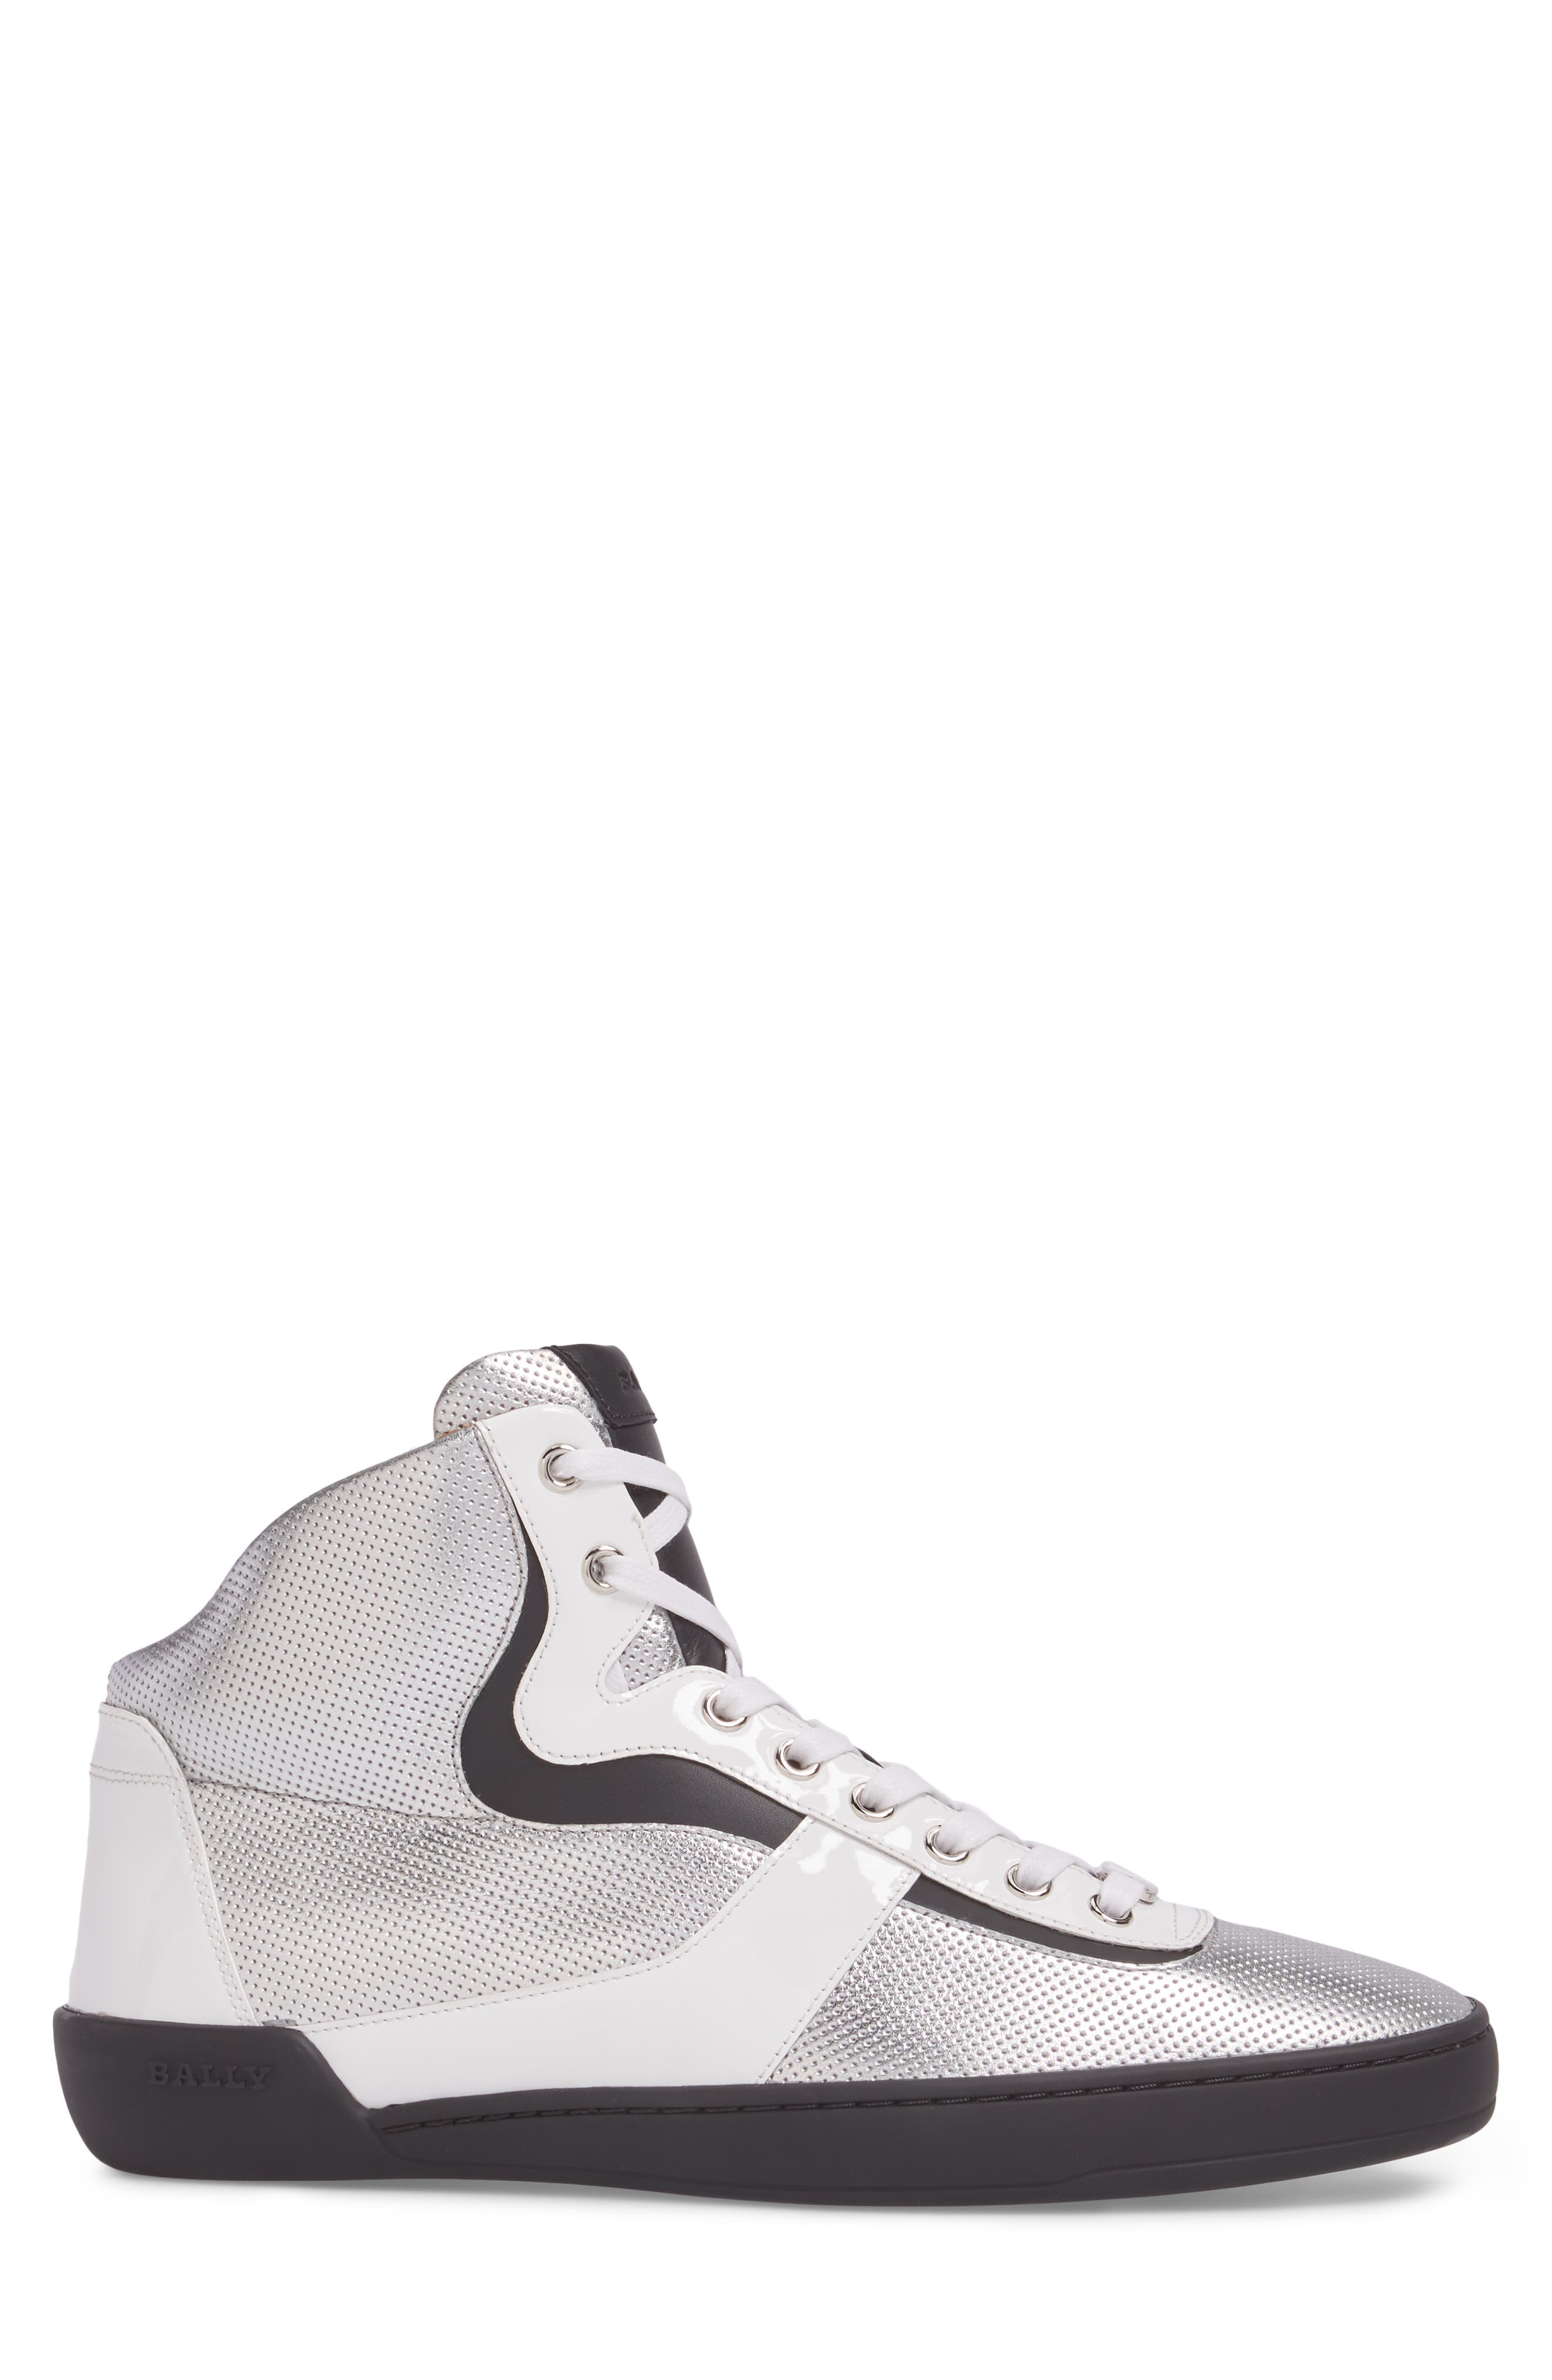 Eroy High Top Sneaker,                             Alternate thumbnail 3, color,                             049